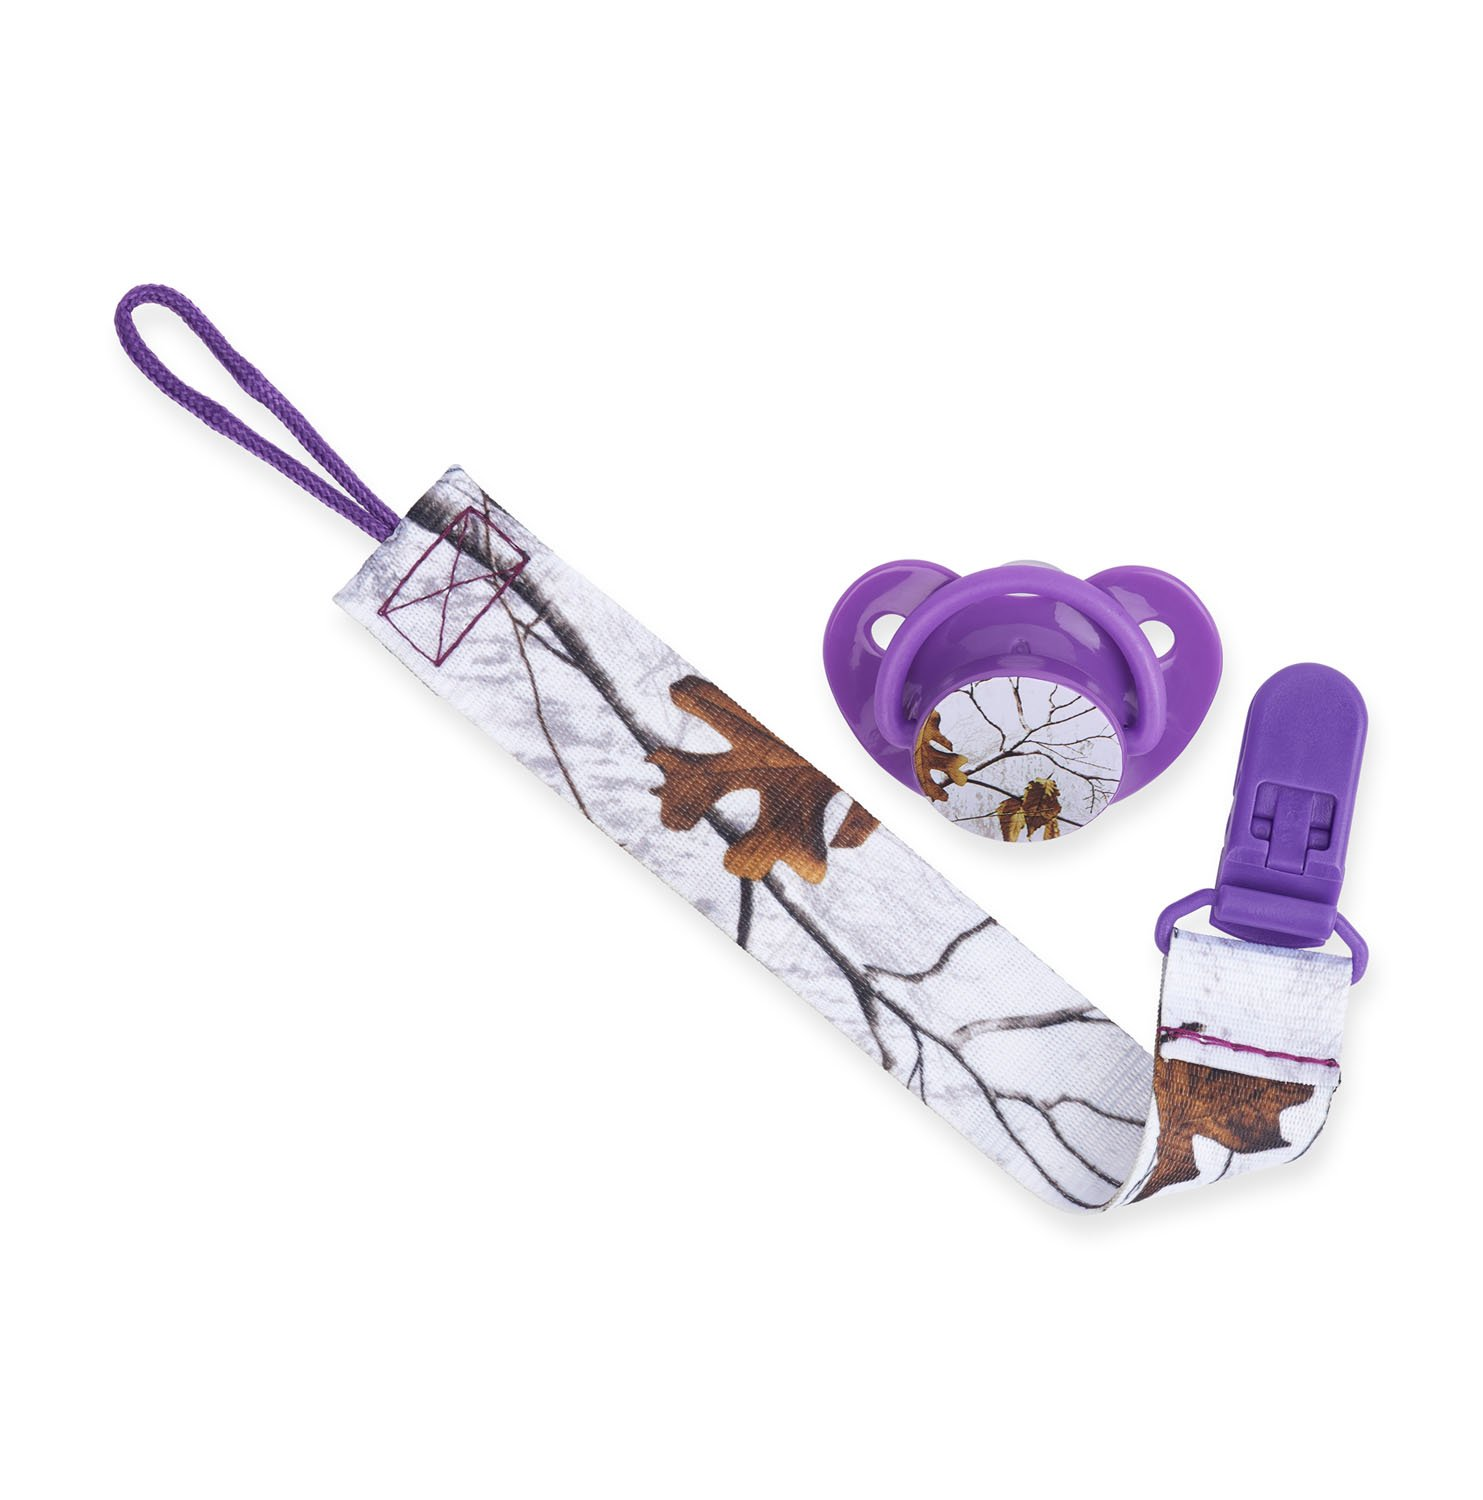 New Realtree Camouflage Orthodontic BPA Free Pacifier /& Lanyard Clip Set Purple